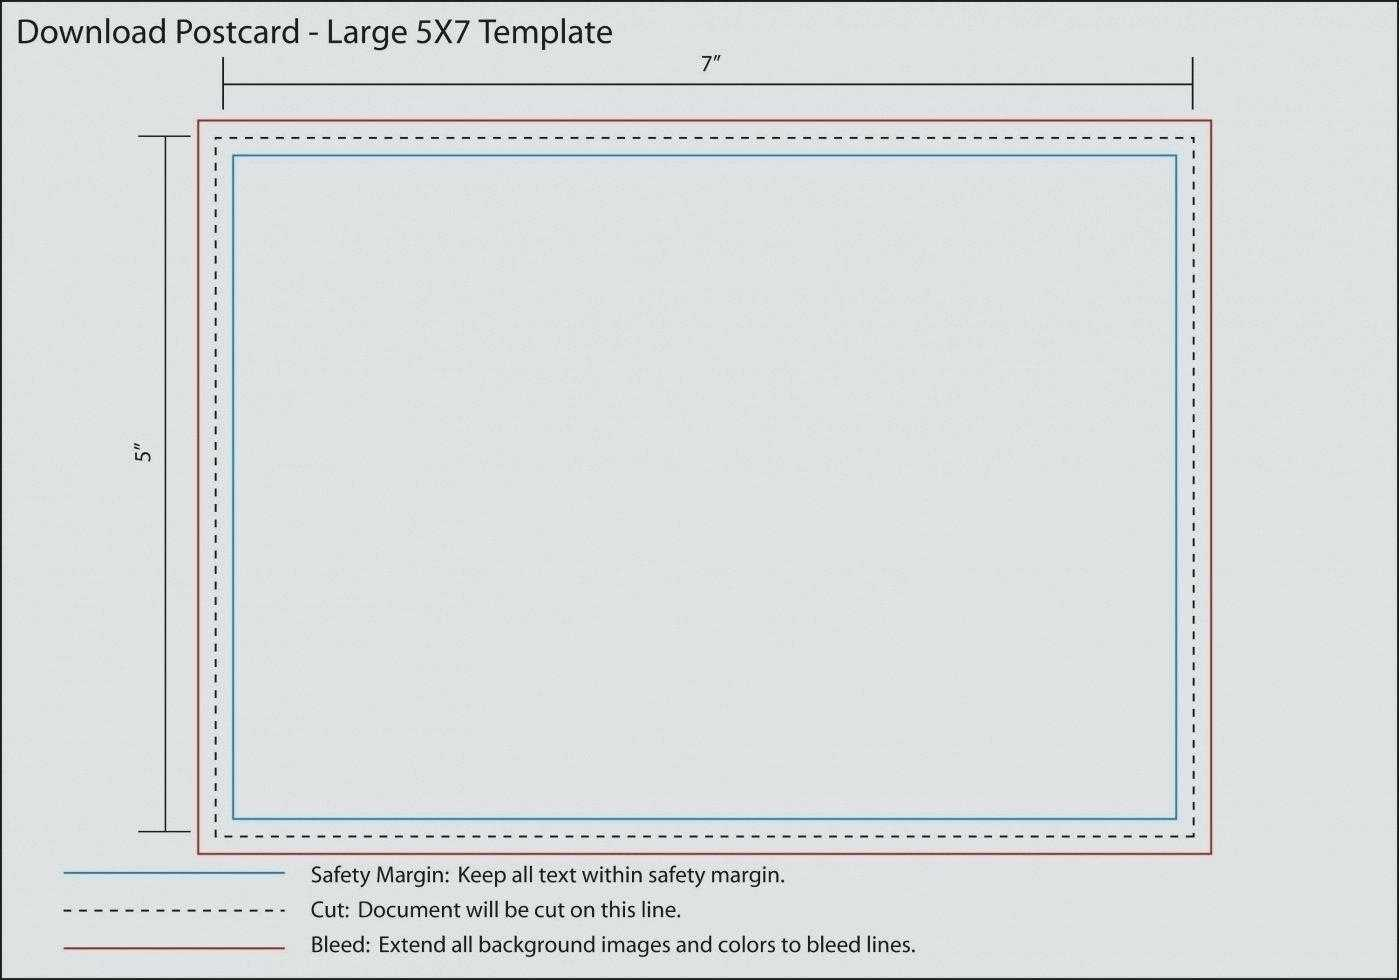 024 Recipe Cards Template For Word Elegant Best Blank Index Throughout 3X5 Blank Index Card Template